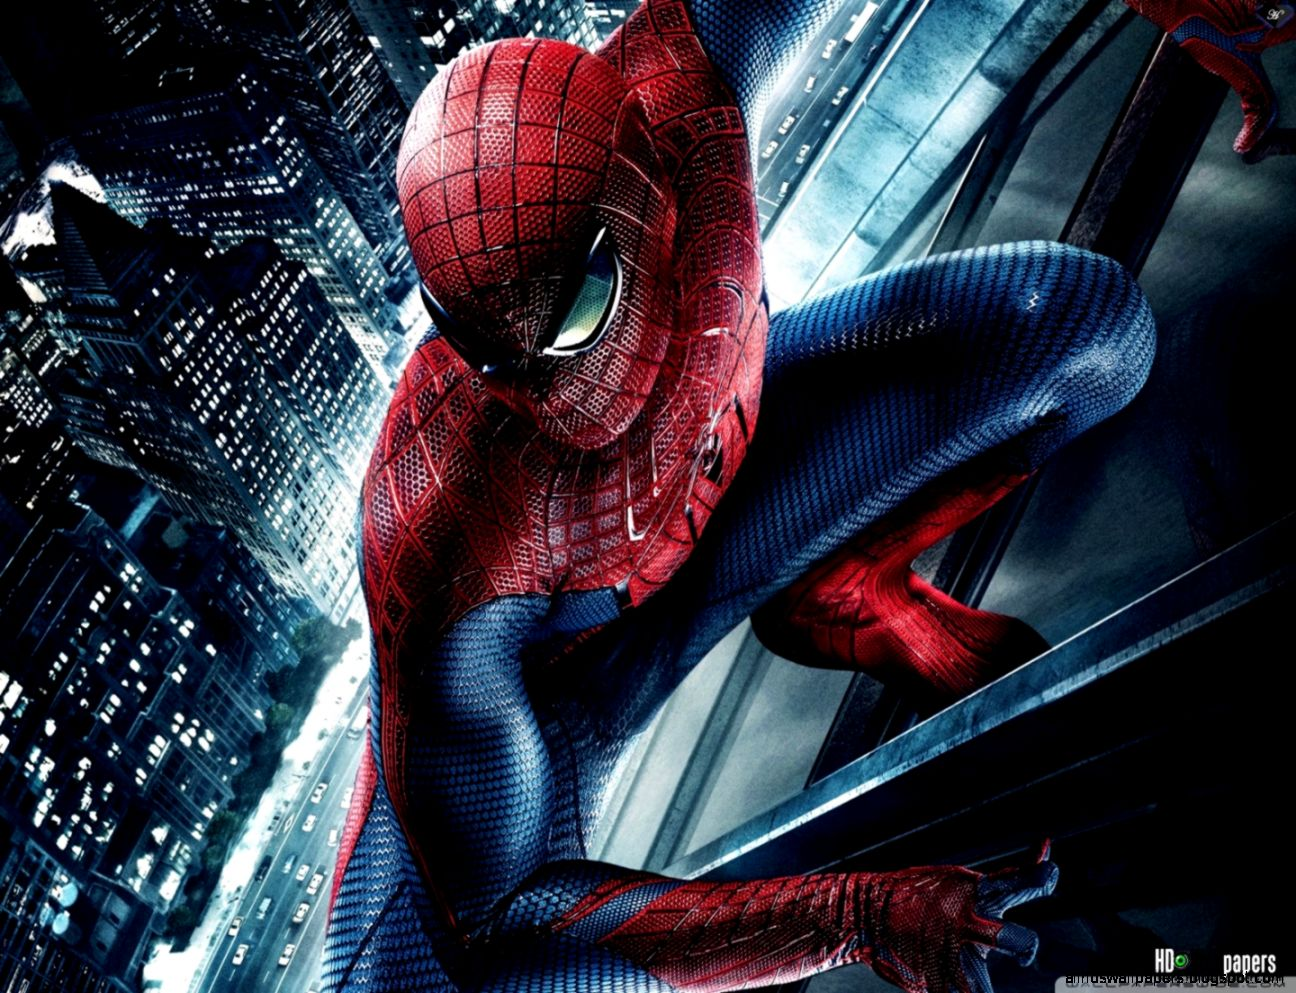 Spiderman 3 Hd Wallpapers 1080p: The Amazing Spider Man 2 Wallpaper Hd 1080P